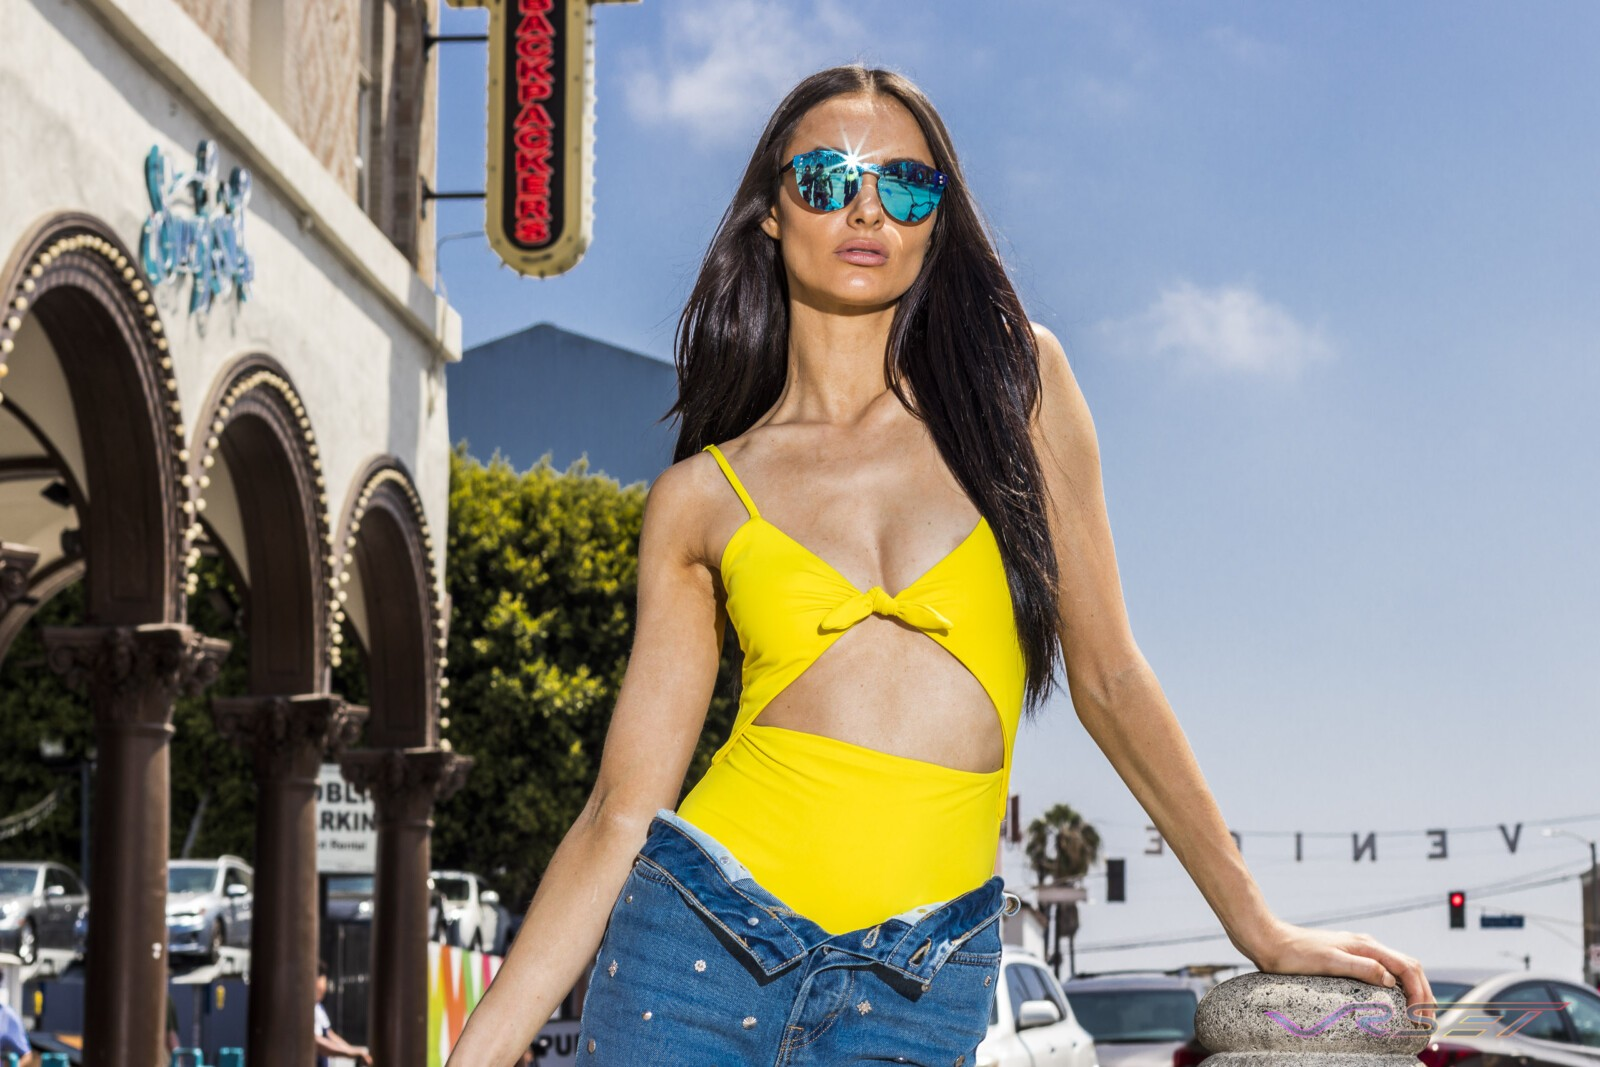 Dionspecs Eyewear Advertising Campaign Female Model Venice California Top Fashion Photographer Los Angeles Orange County Video Production David Victory